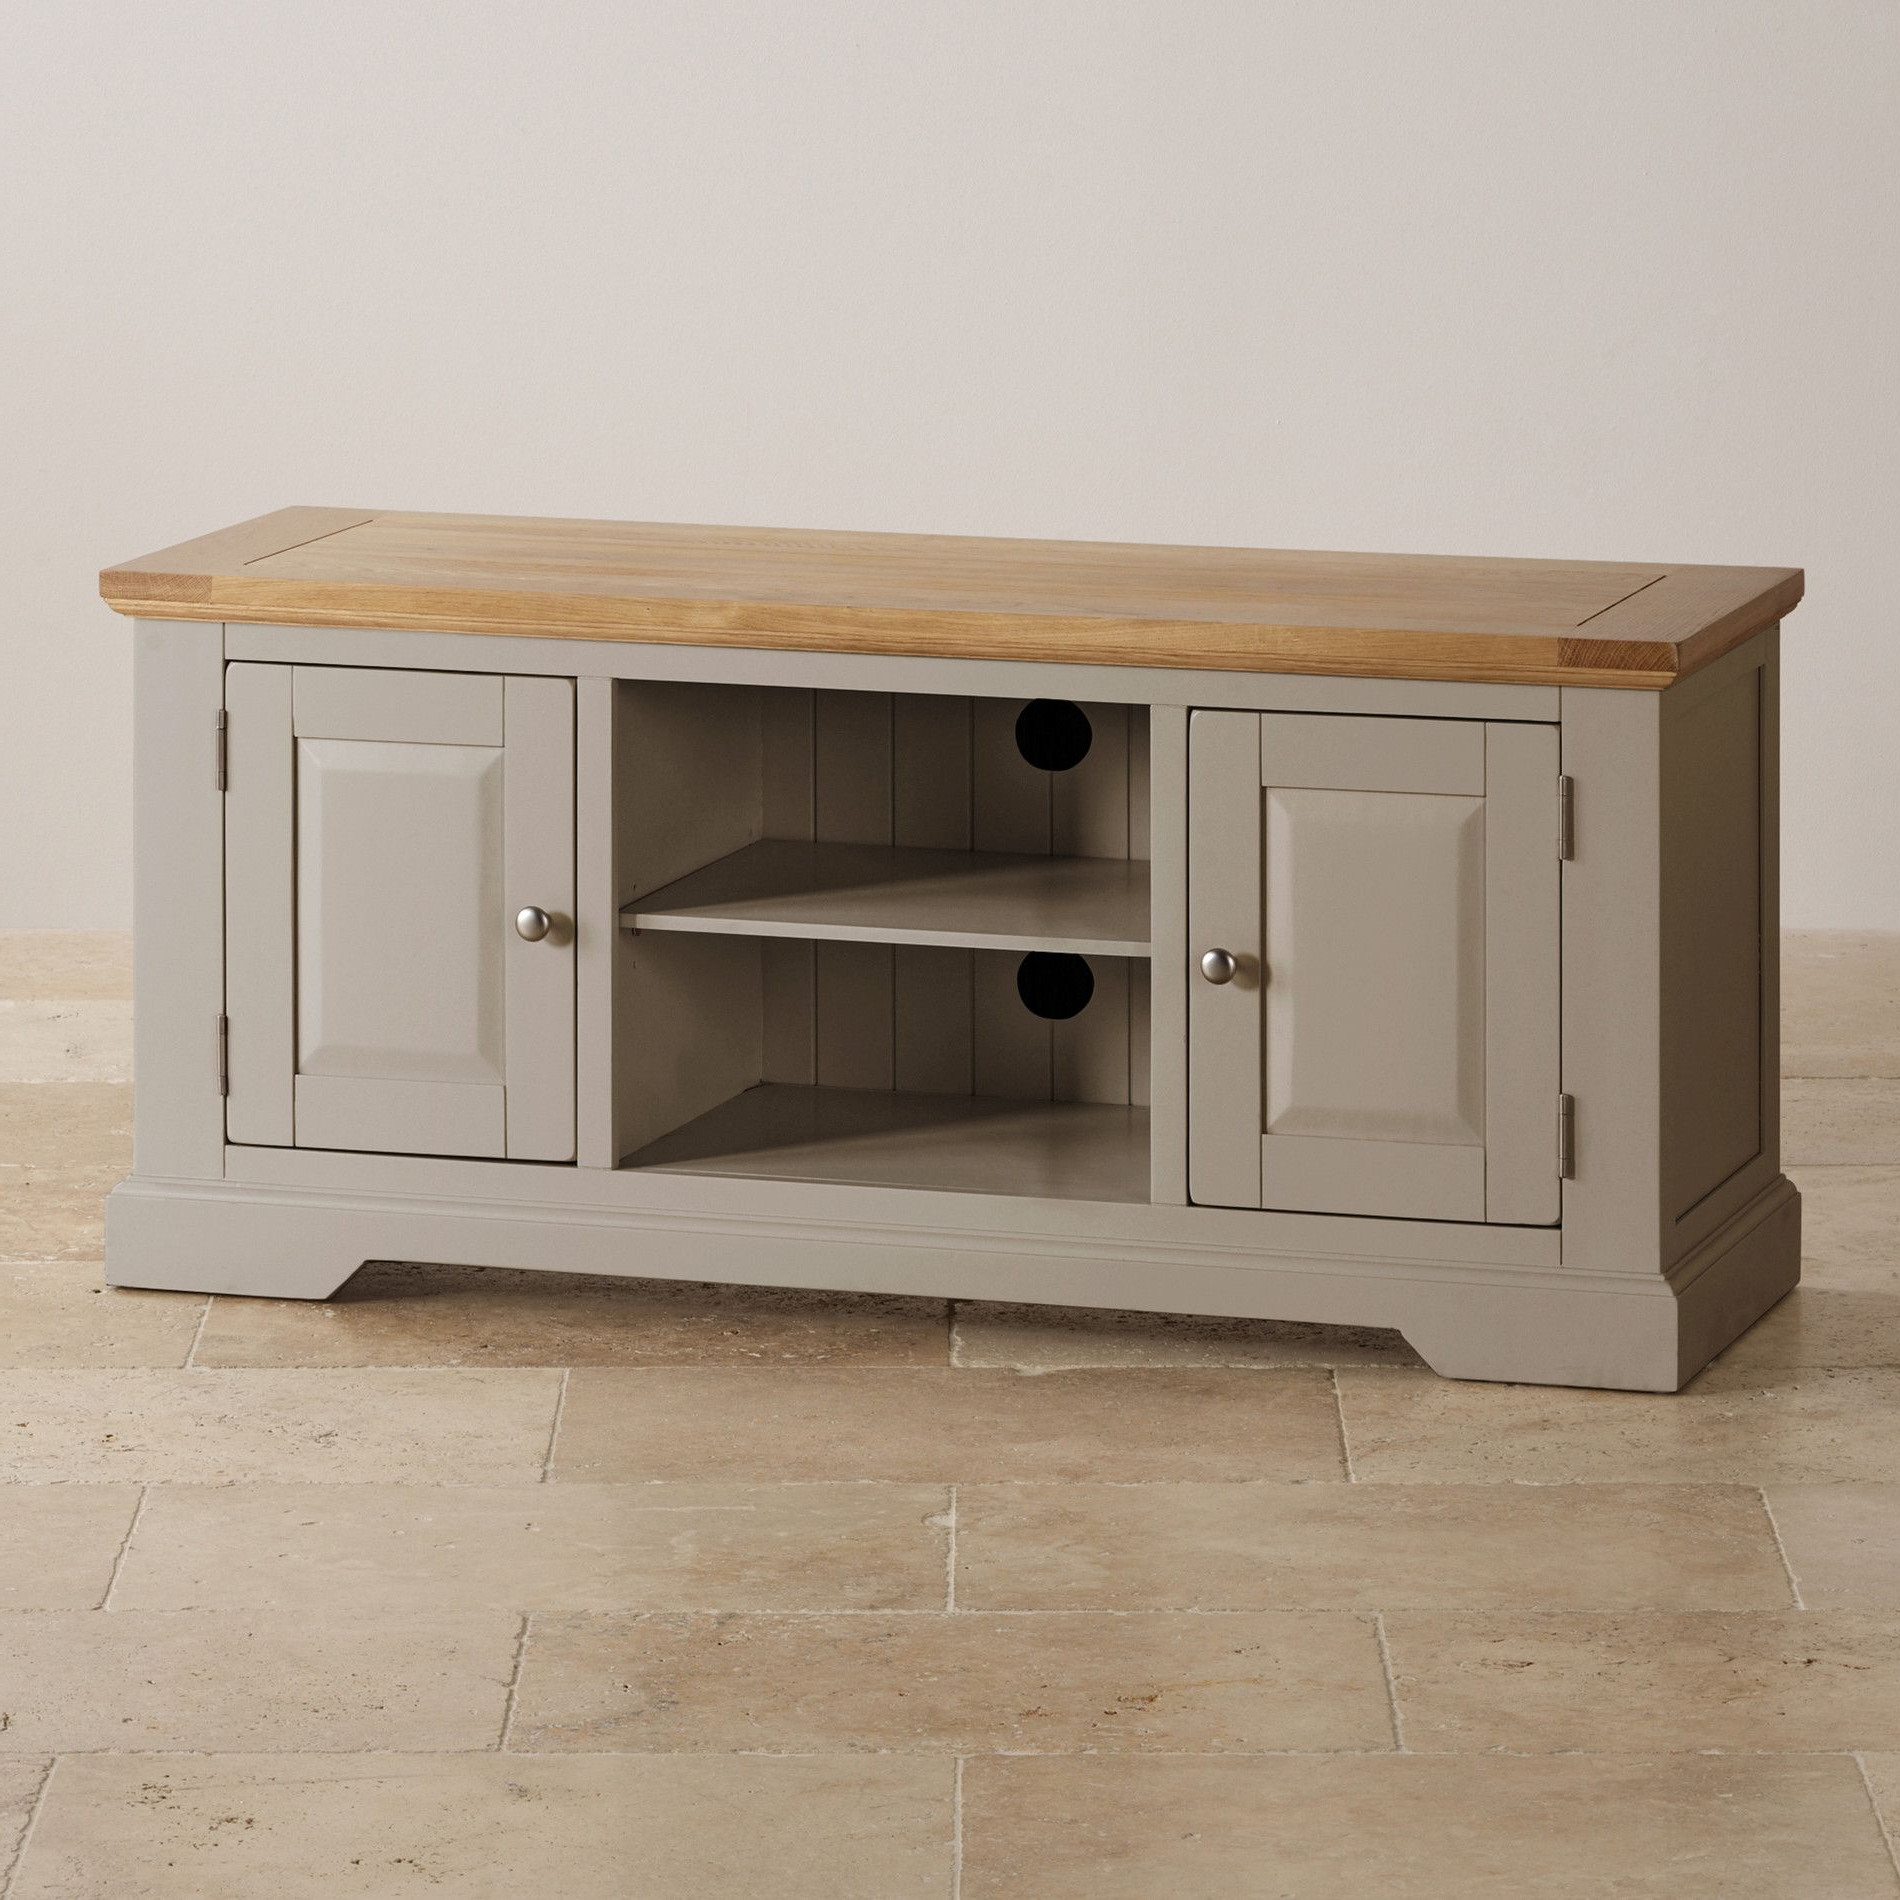 Preferred St Ives Natural Oak And Light Grey Painted Large Tv Cabinet Throughout Light Oak Tv Cabinets (Gallery 5 of 20)